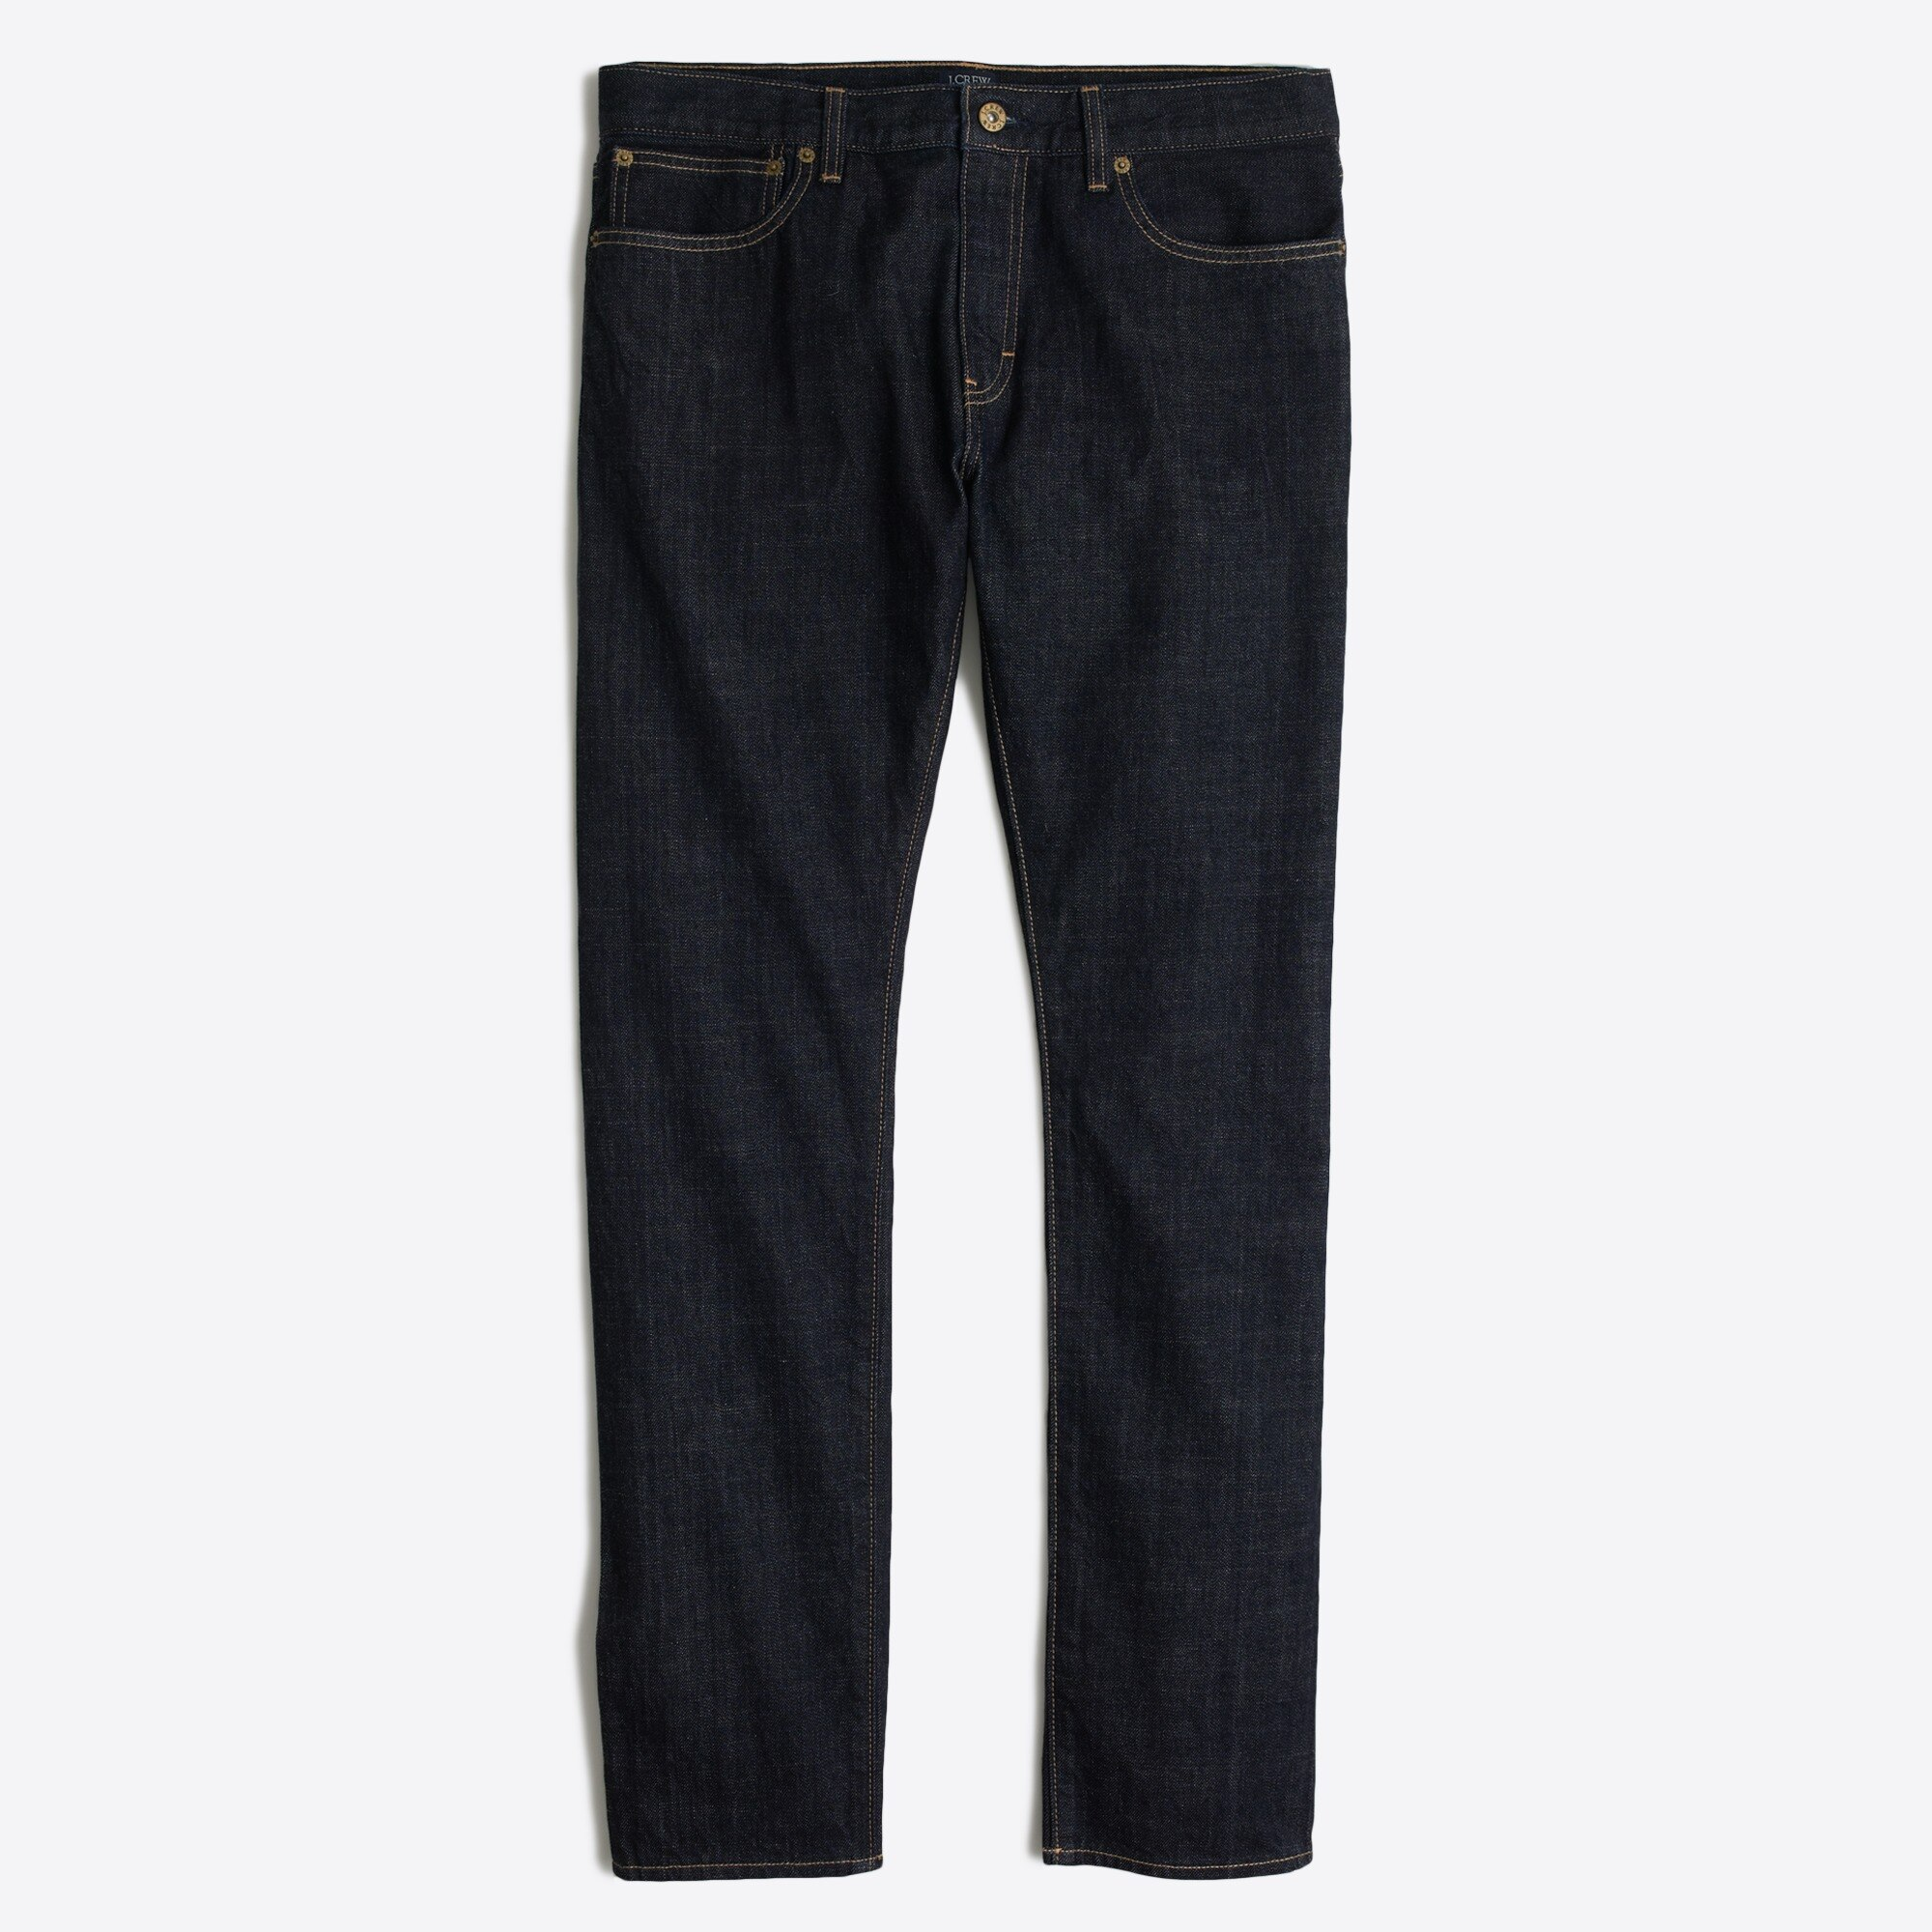 slim-fit selvedge jean in dark wash : factorymen slimmest